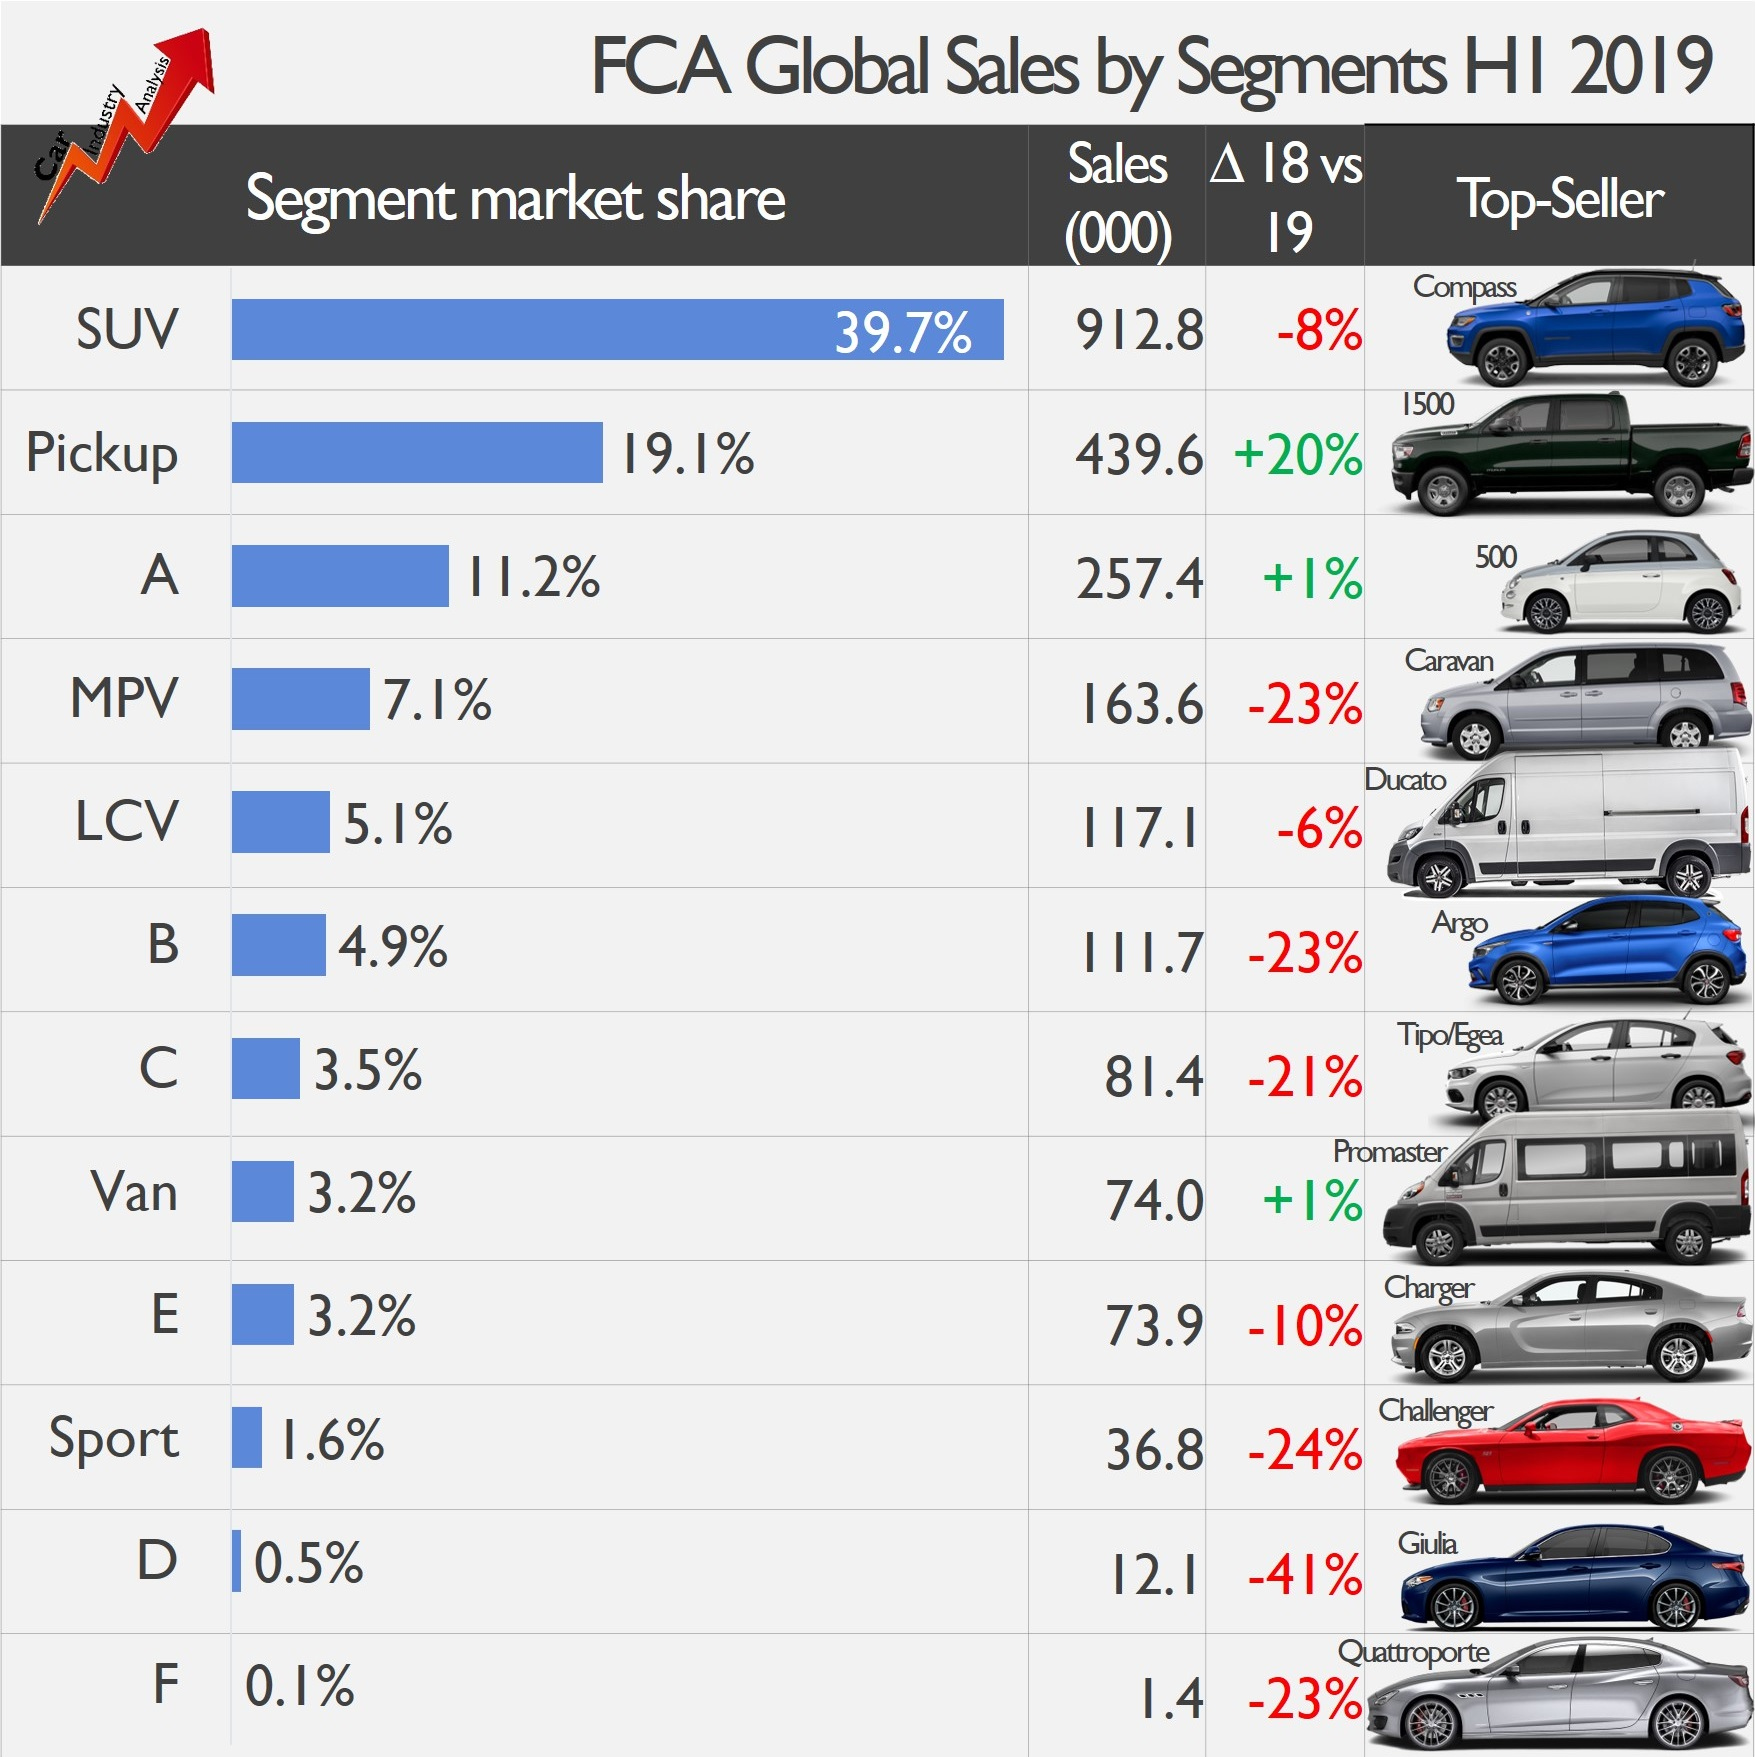 The Global Vehicle Sales Expansion Continues In H1 2018: SUV Global Sales Fall In H1 2019. FCA Loses Ground